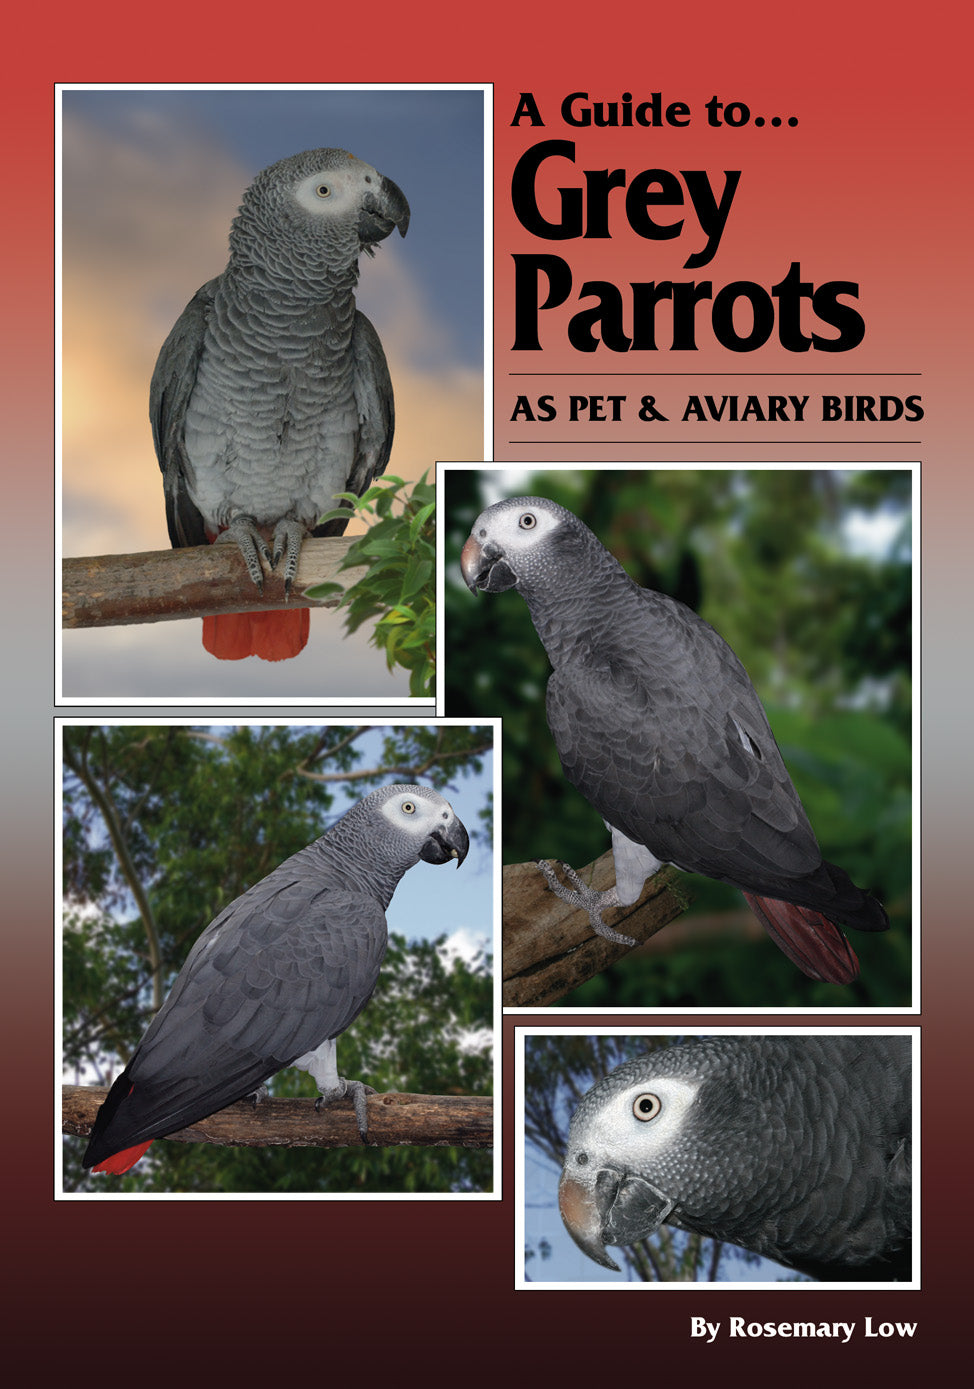 A Guide to Grey Parrots as Pet and Aviary Birds (Hard Cover)